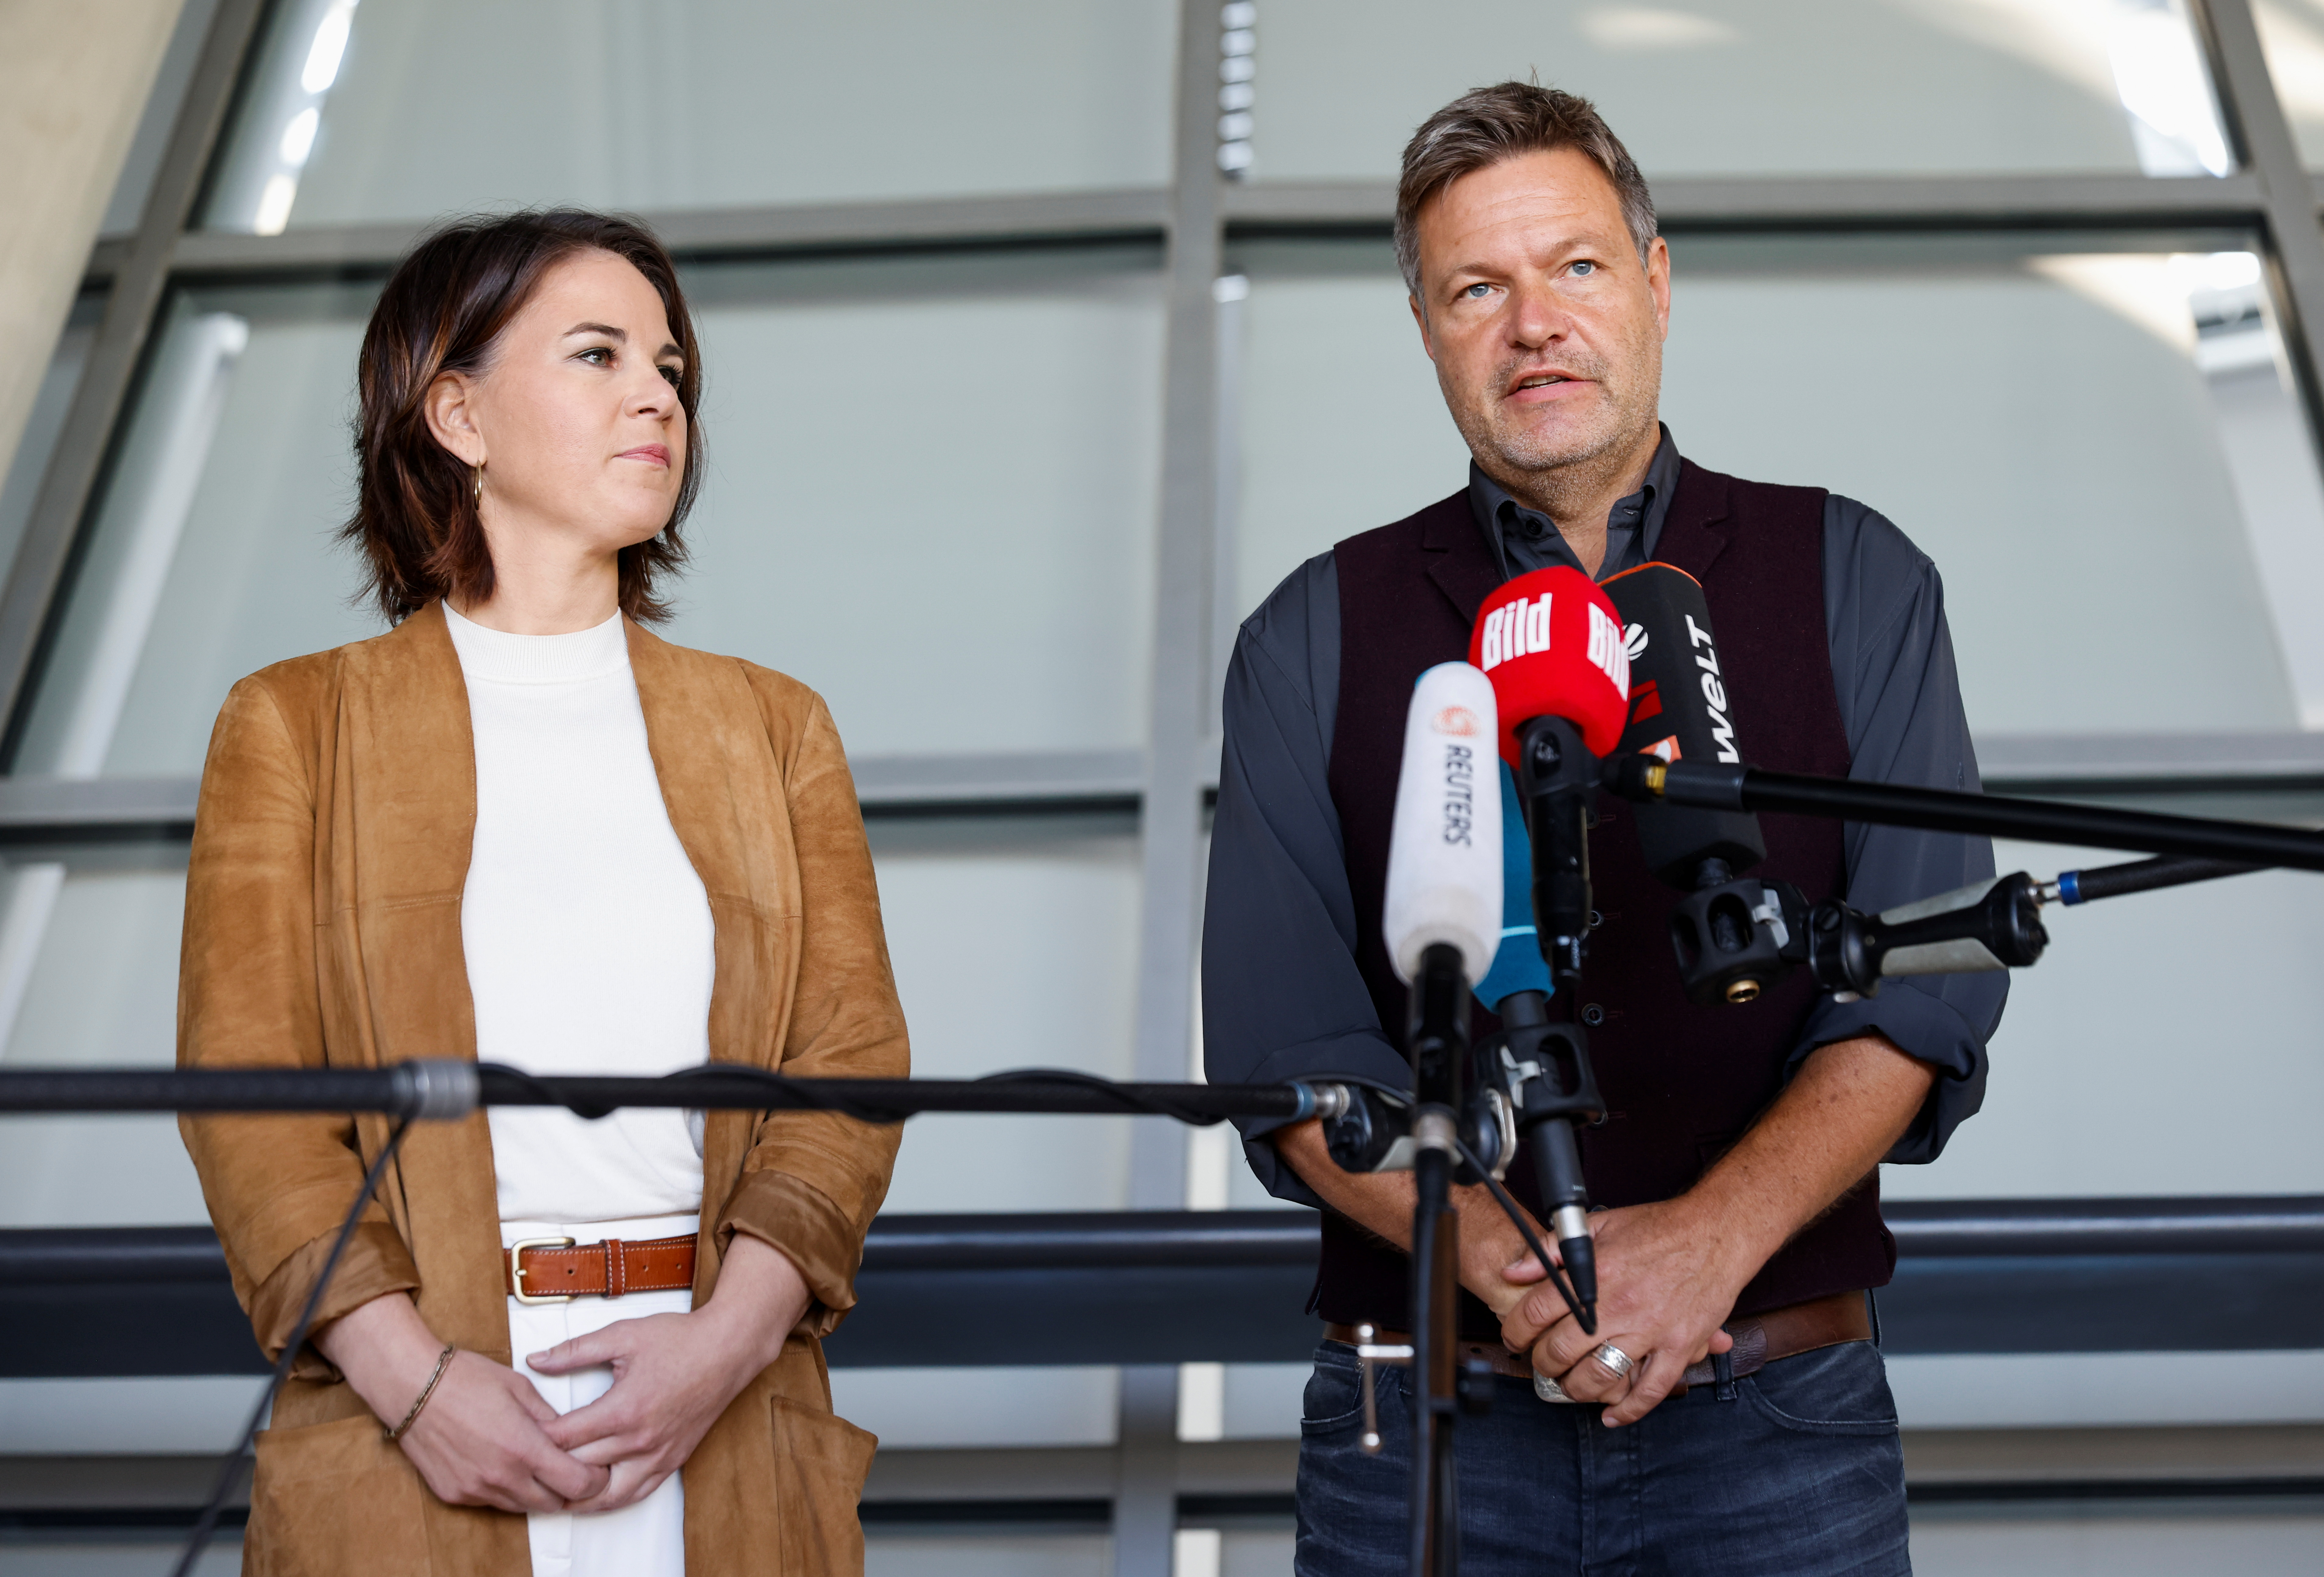 The Greens party co-leaders Annalena Baerbock and Robert Habeck give a statement after a party leadership meeting in Berlin, Germany, October 6, 2021. REUTERS/Michele Tantussi